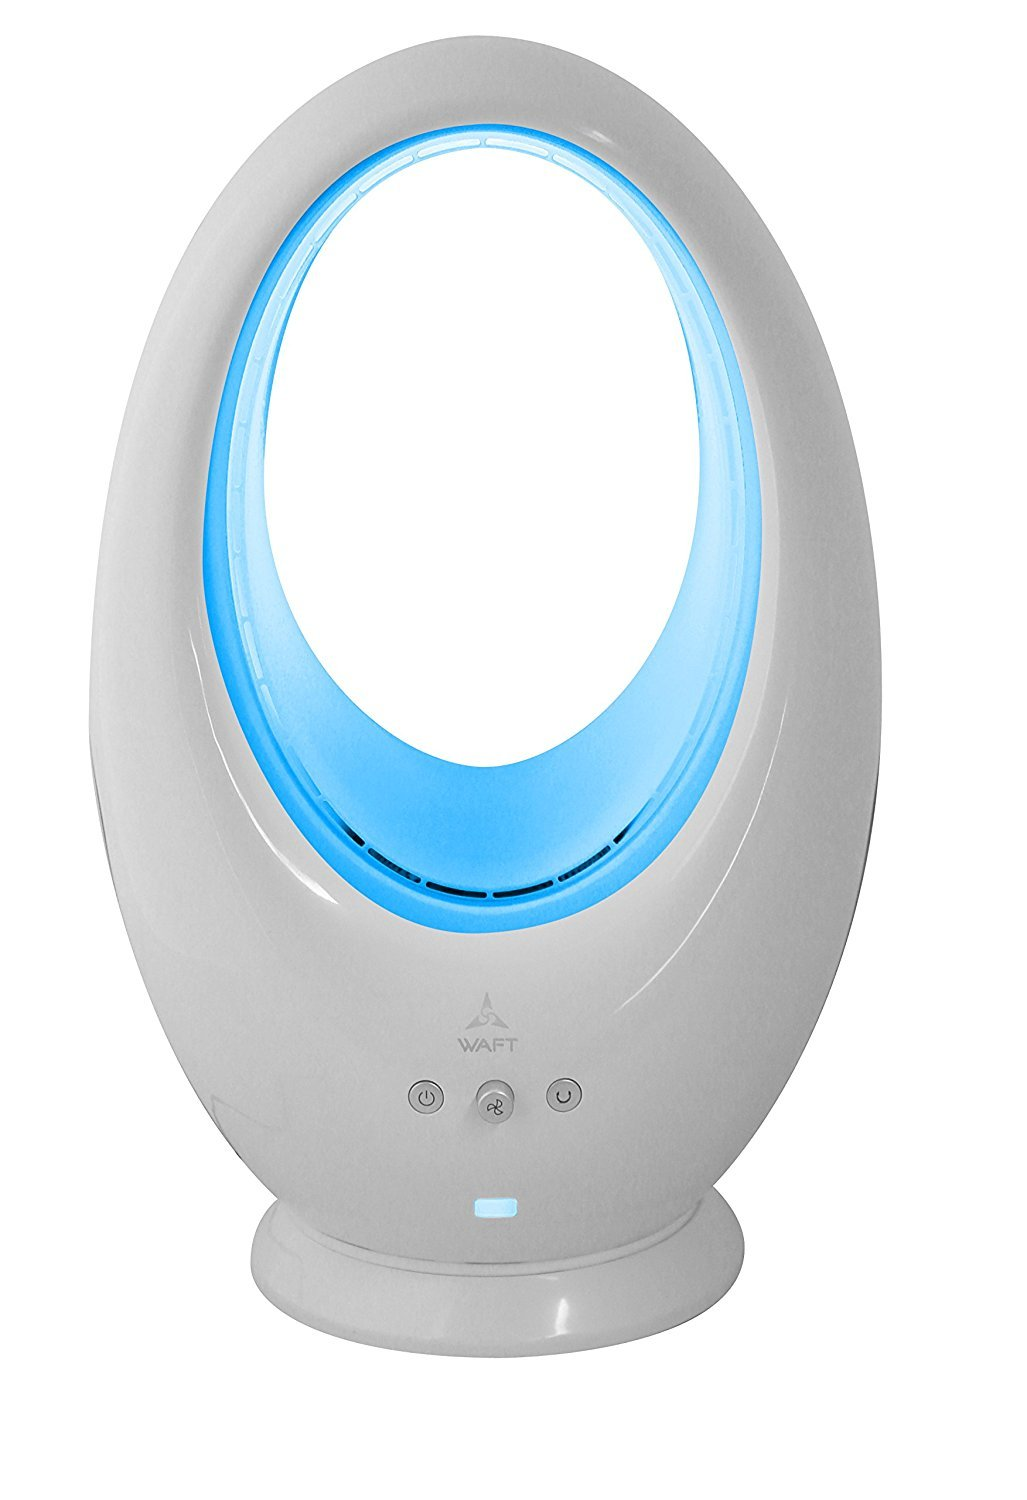 Bladeless Fan By Waft, Oscillating Fan Alternate Between 16 Colors Decorative LED Light, Remote Control Included (Silver)